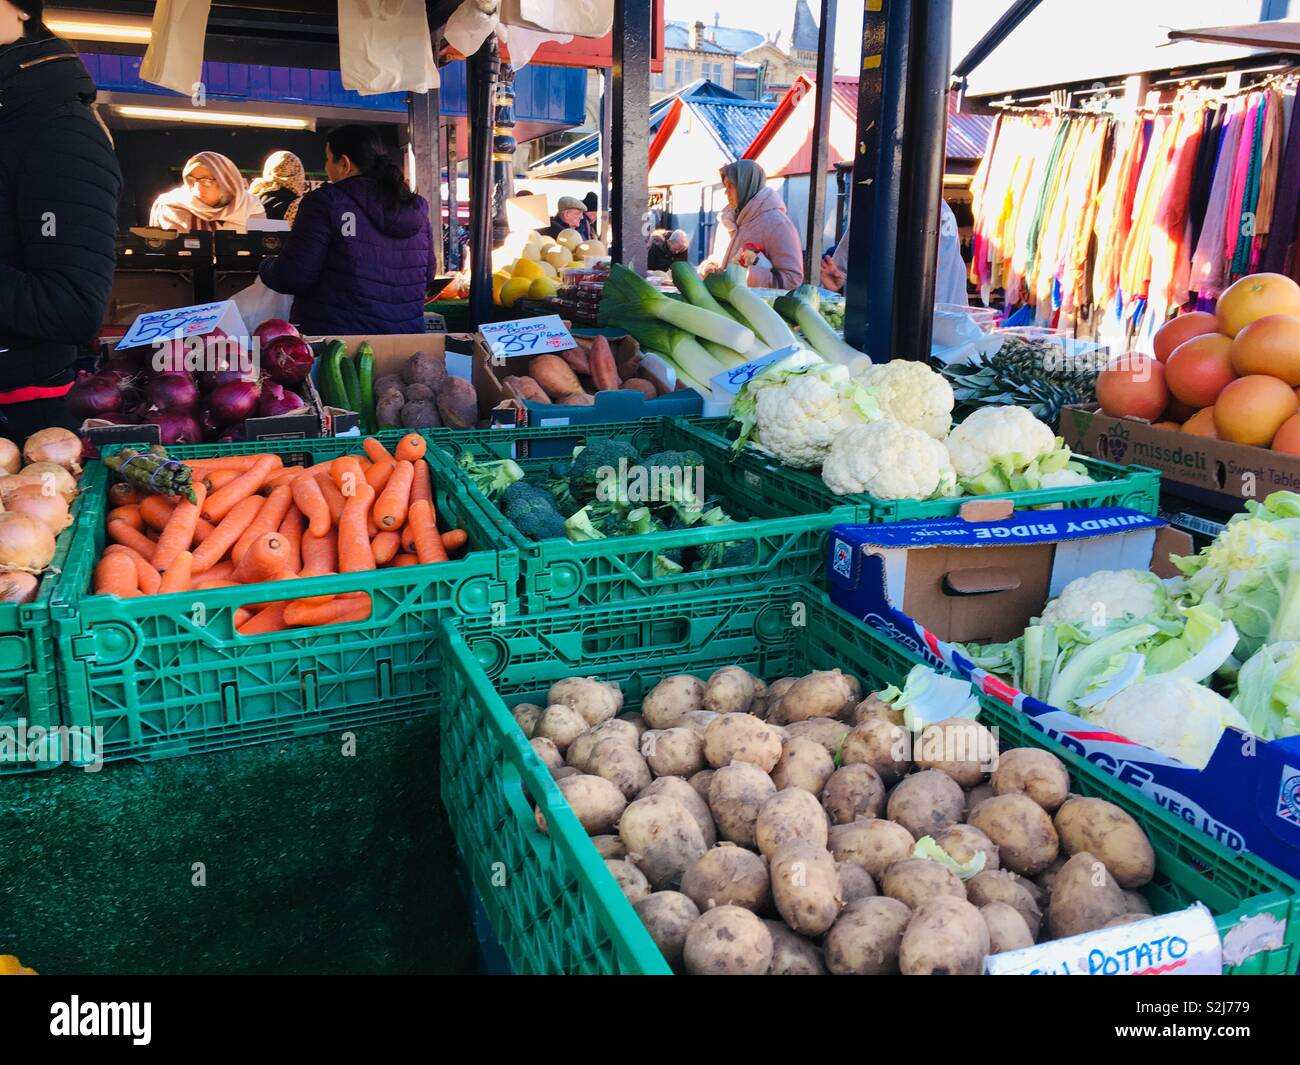 Fruit and vegetable stall at Dewsbury market, Yorkshire - Stock Image